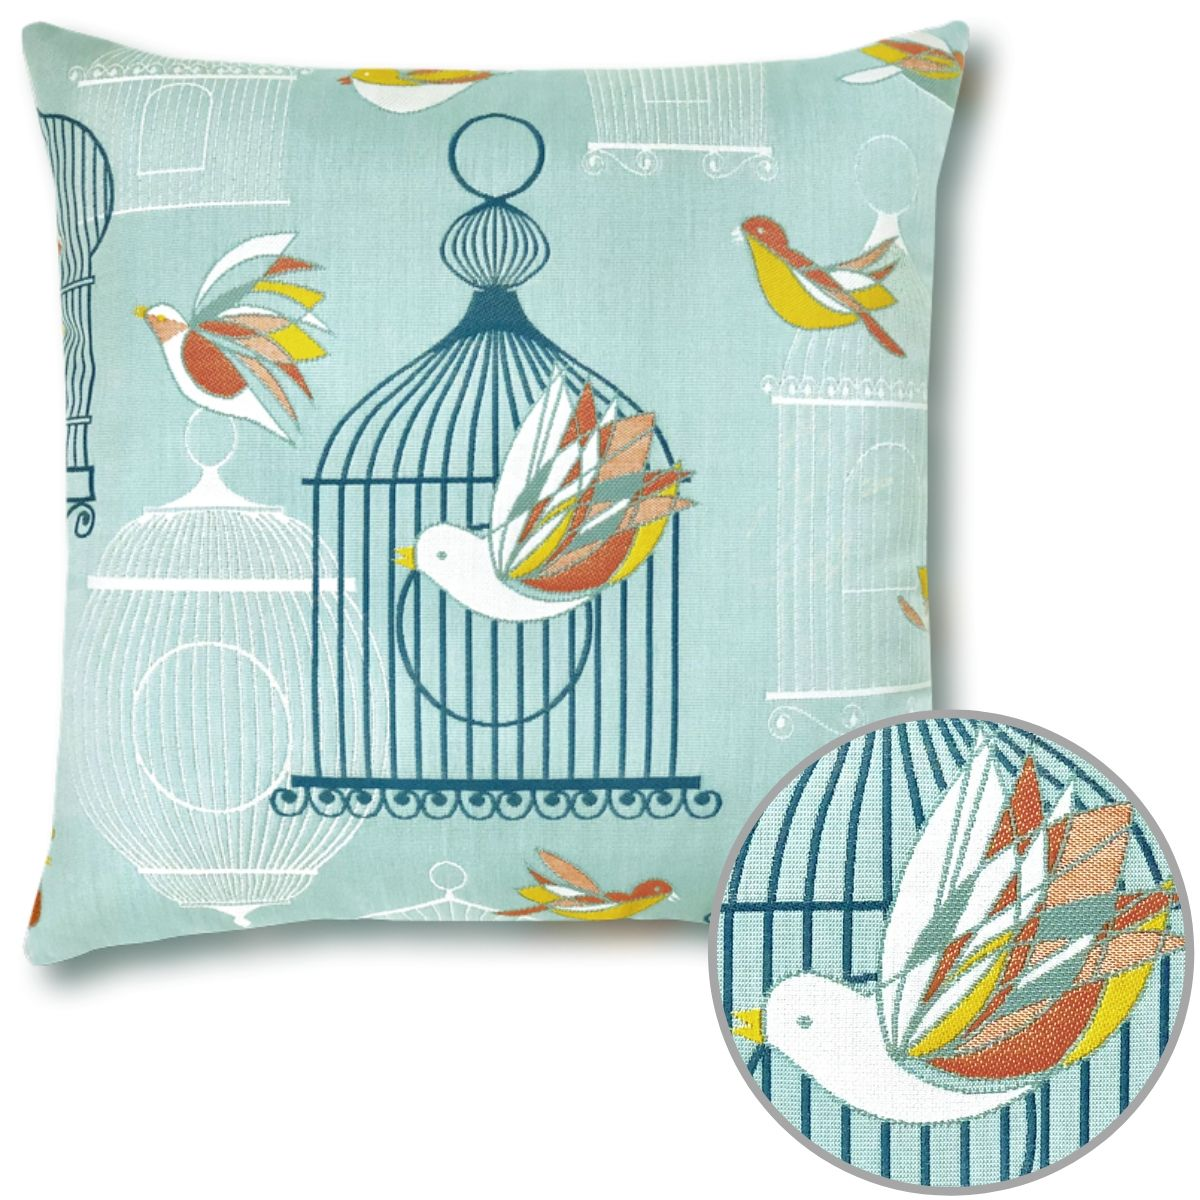 "The Birds and Cages design from Elaine Smith graces this exuberant 22"" square Pillow that is suitable for full outdoor use."